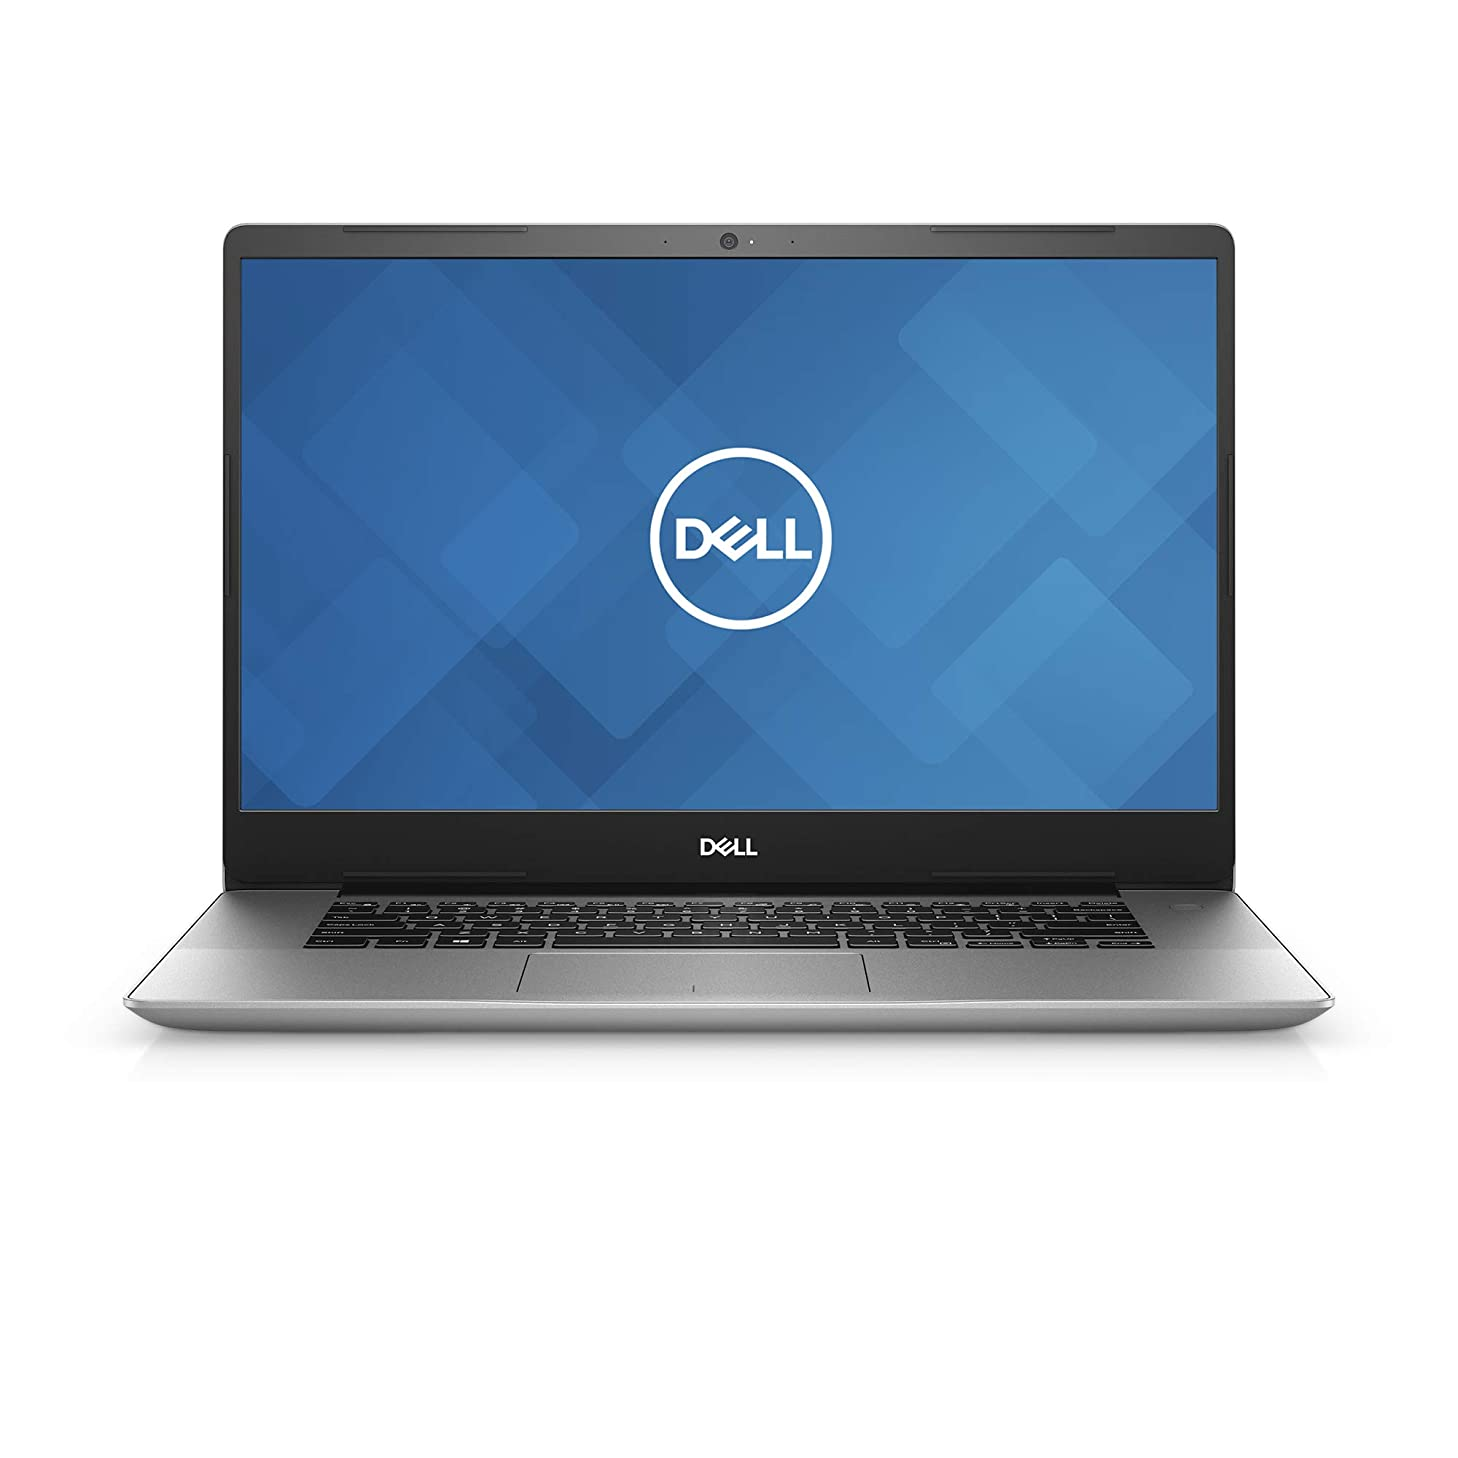 Dell Inspiron 15 5580 Laptop, 8th Gen Intel Core I5-8265U Proc(6Mb Cache, up to 3.9 GHz), 15.6